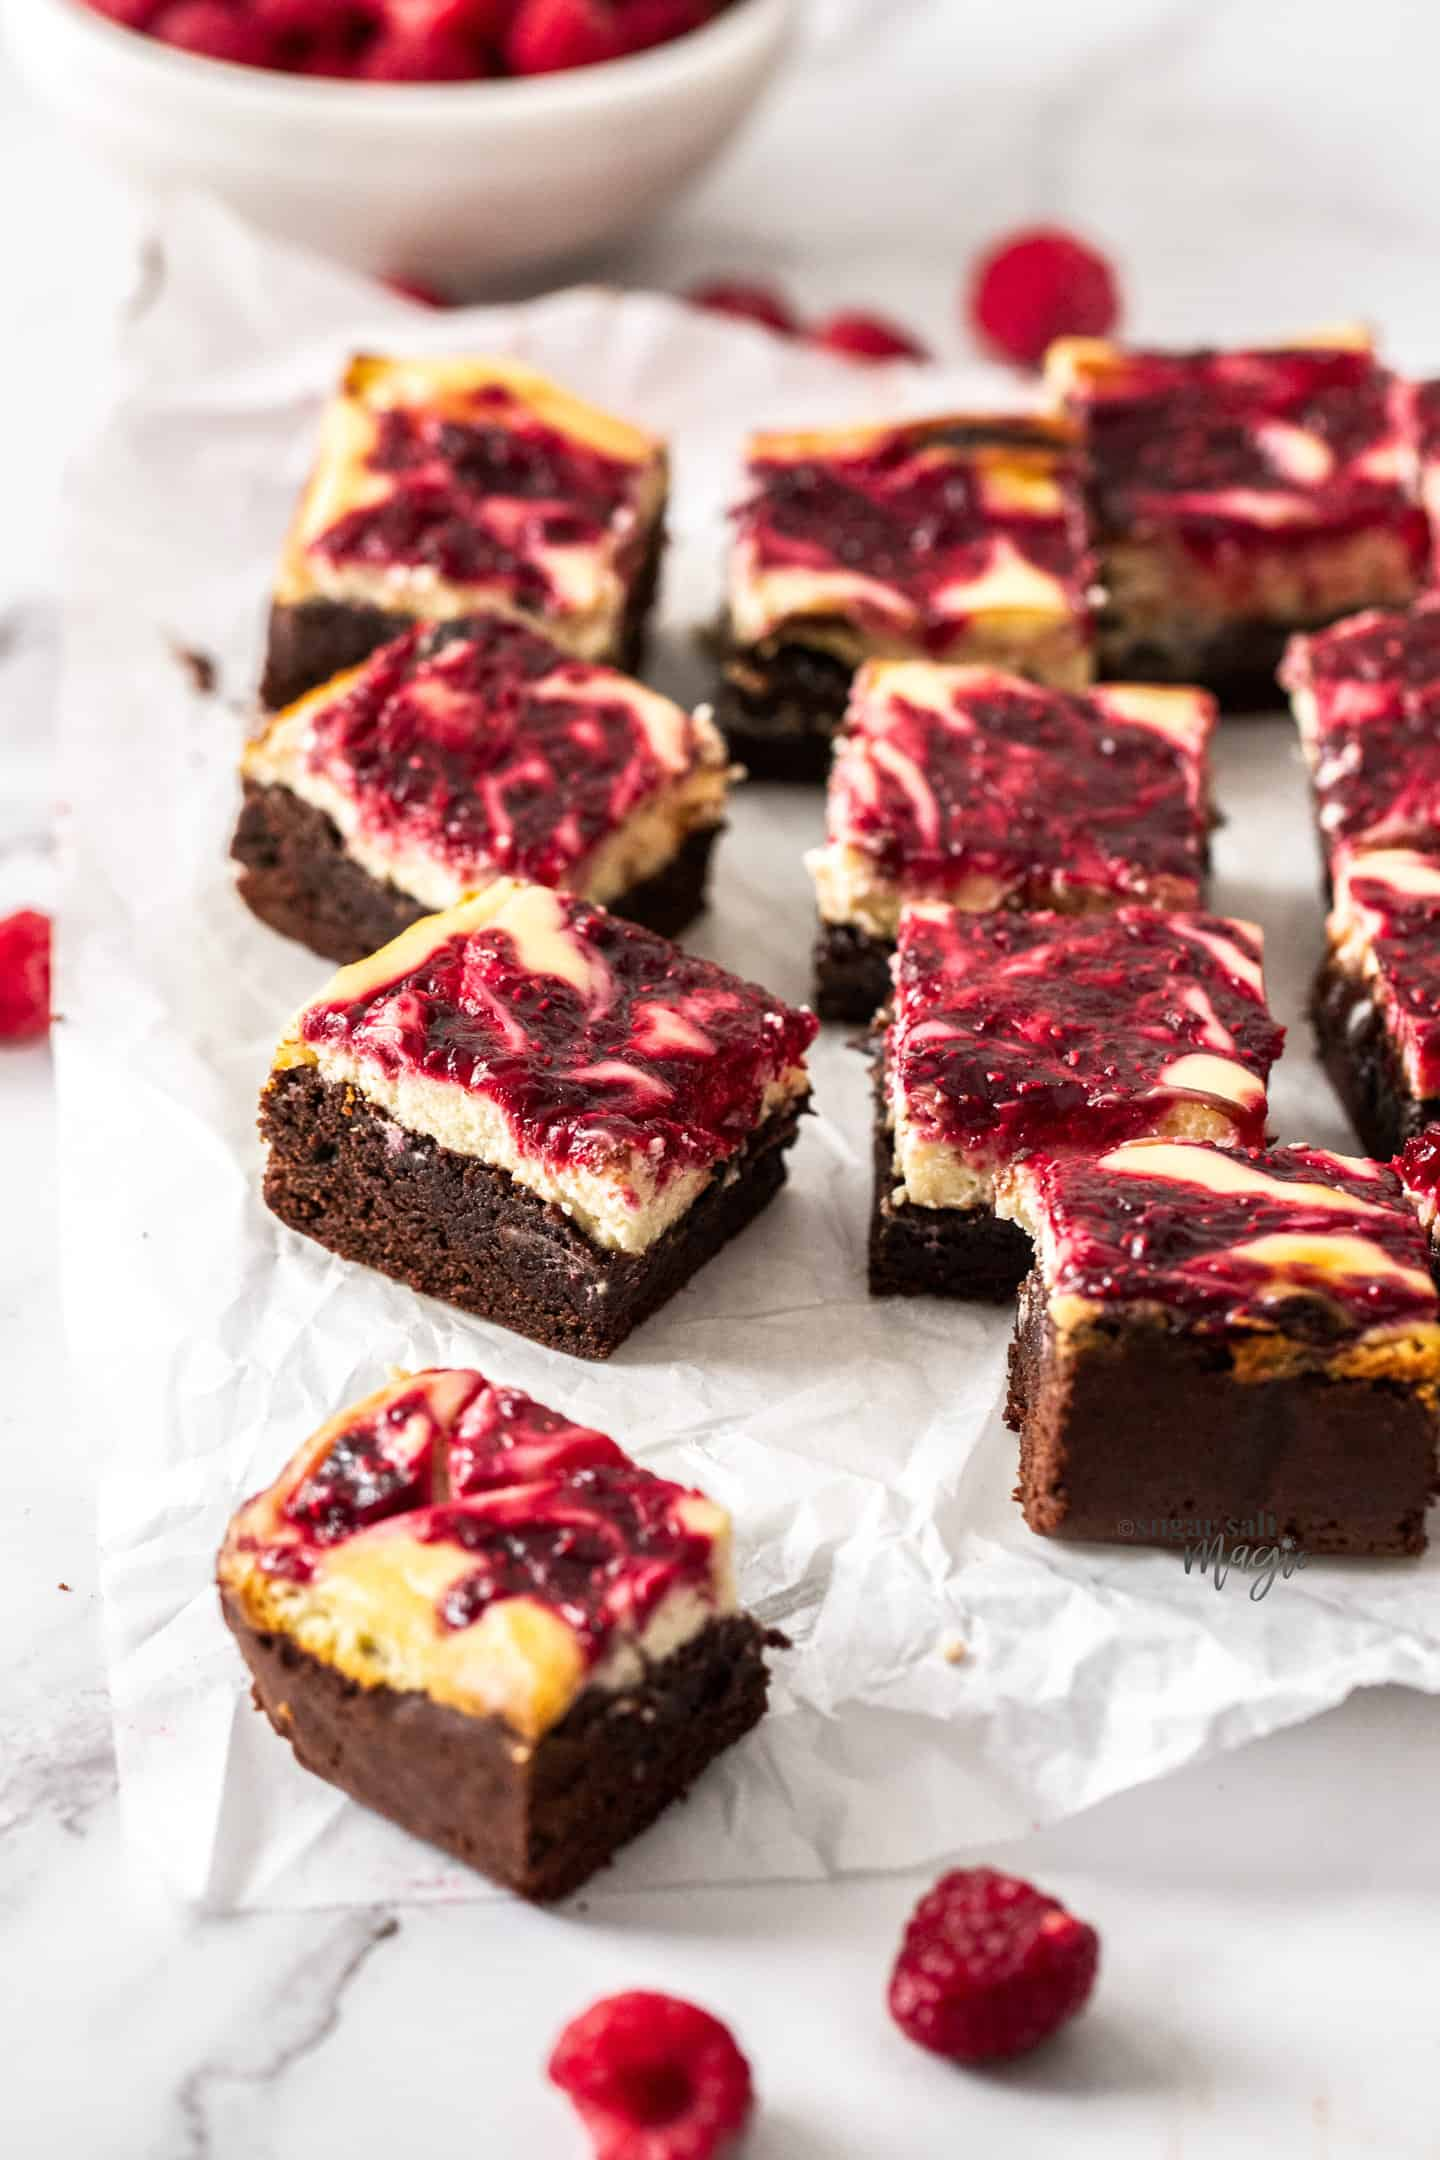 A batch of raspberry cheesecake brownies on a sheet of baking paper.